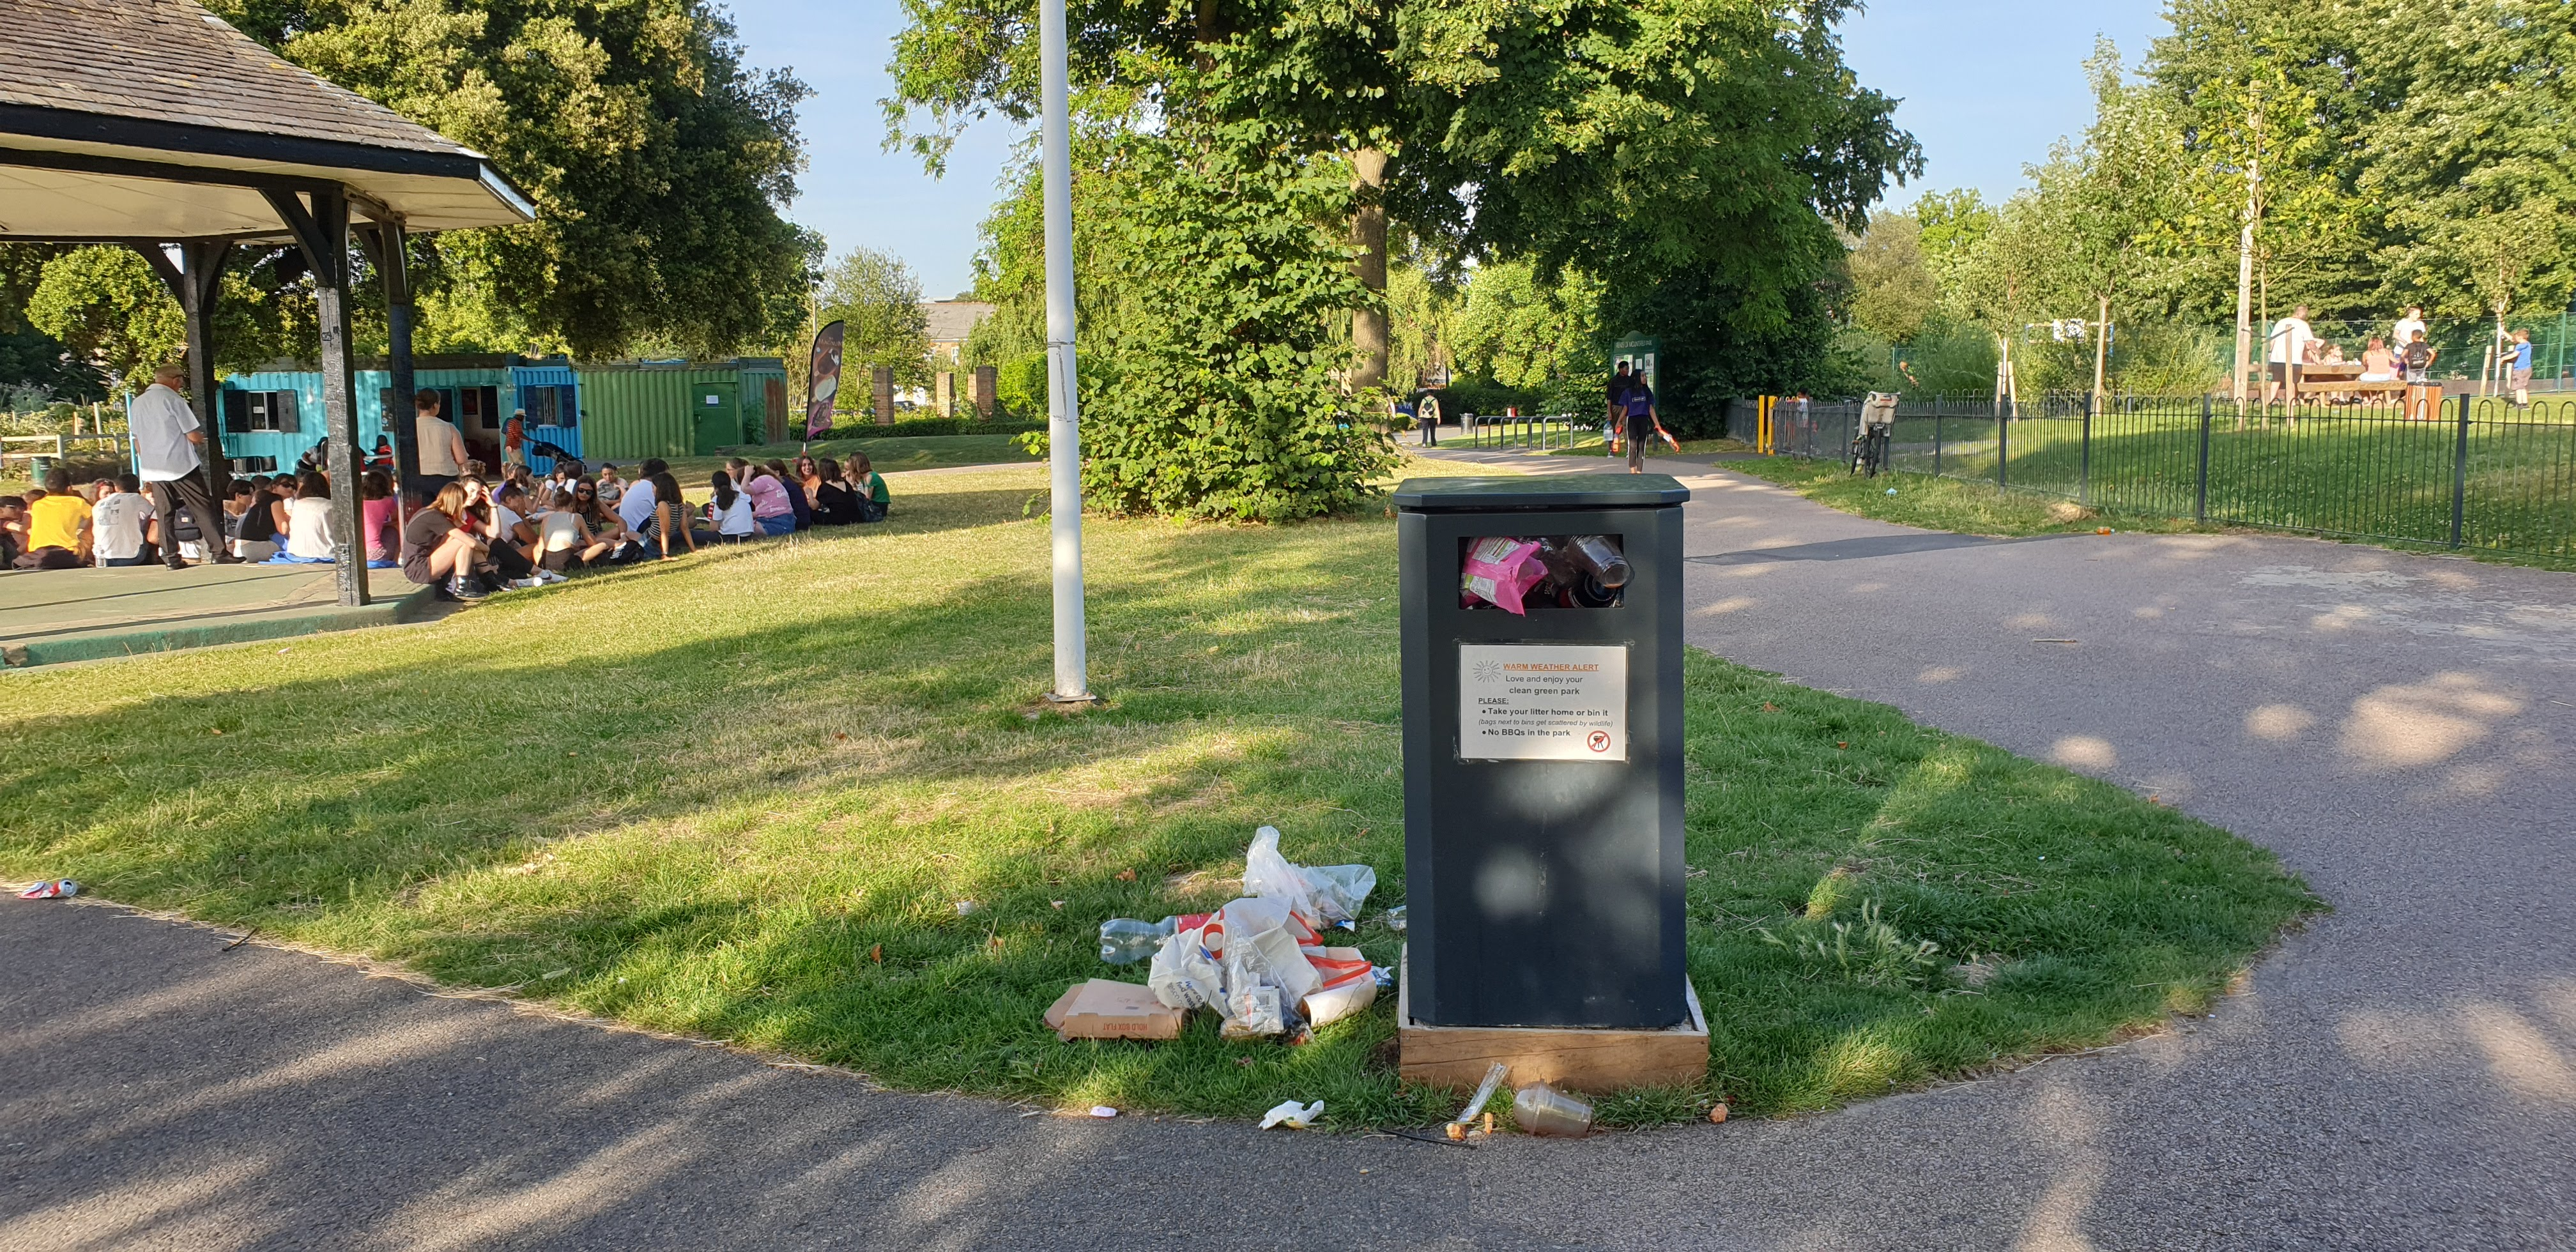 @GlendaleLew, @GlendaleUK, Lewisham GreenScene why so many overfull litter bins at #mountsfieldpark? Please arrange for more morning and evening litter collections during hot weather...